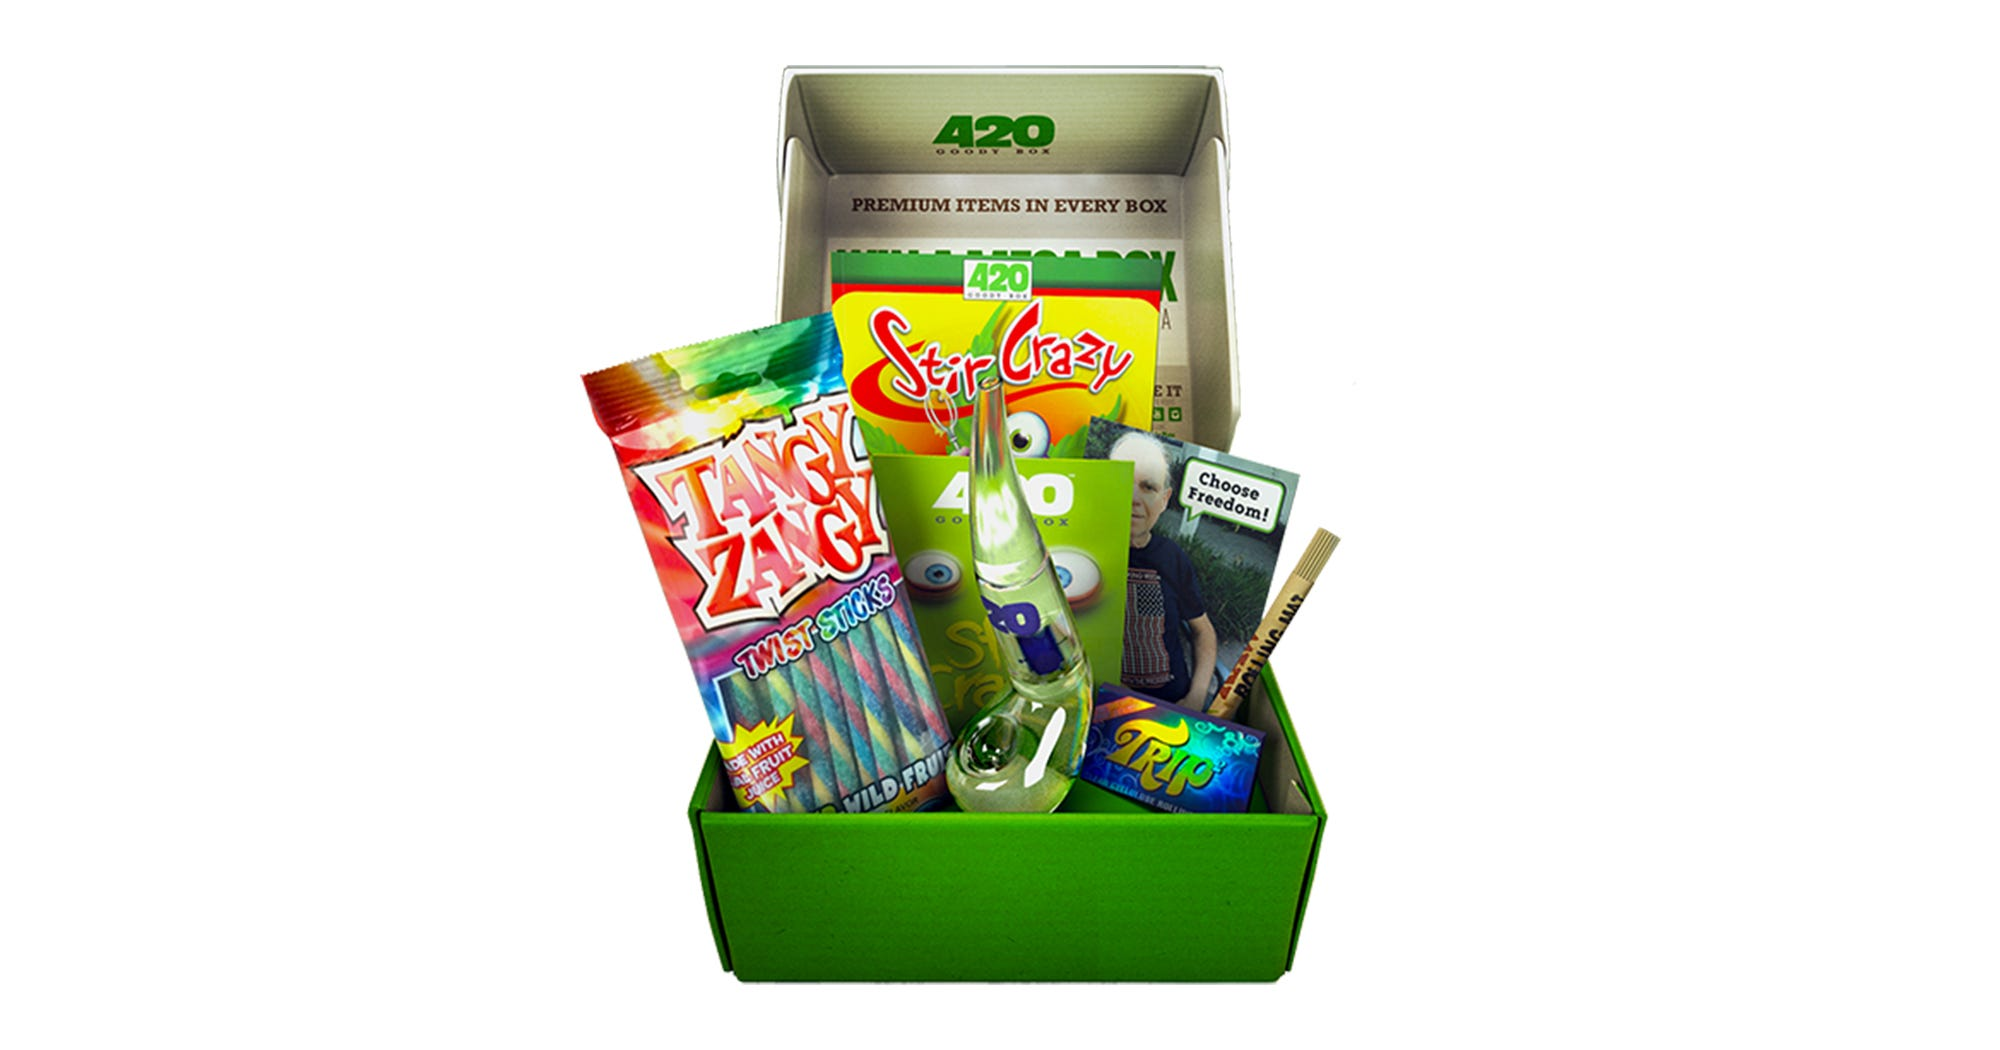 8 Weed Subscription Boxes To Bring A Little Extra Chill Into Your Life